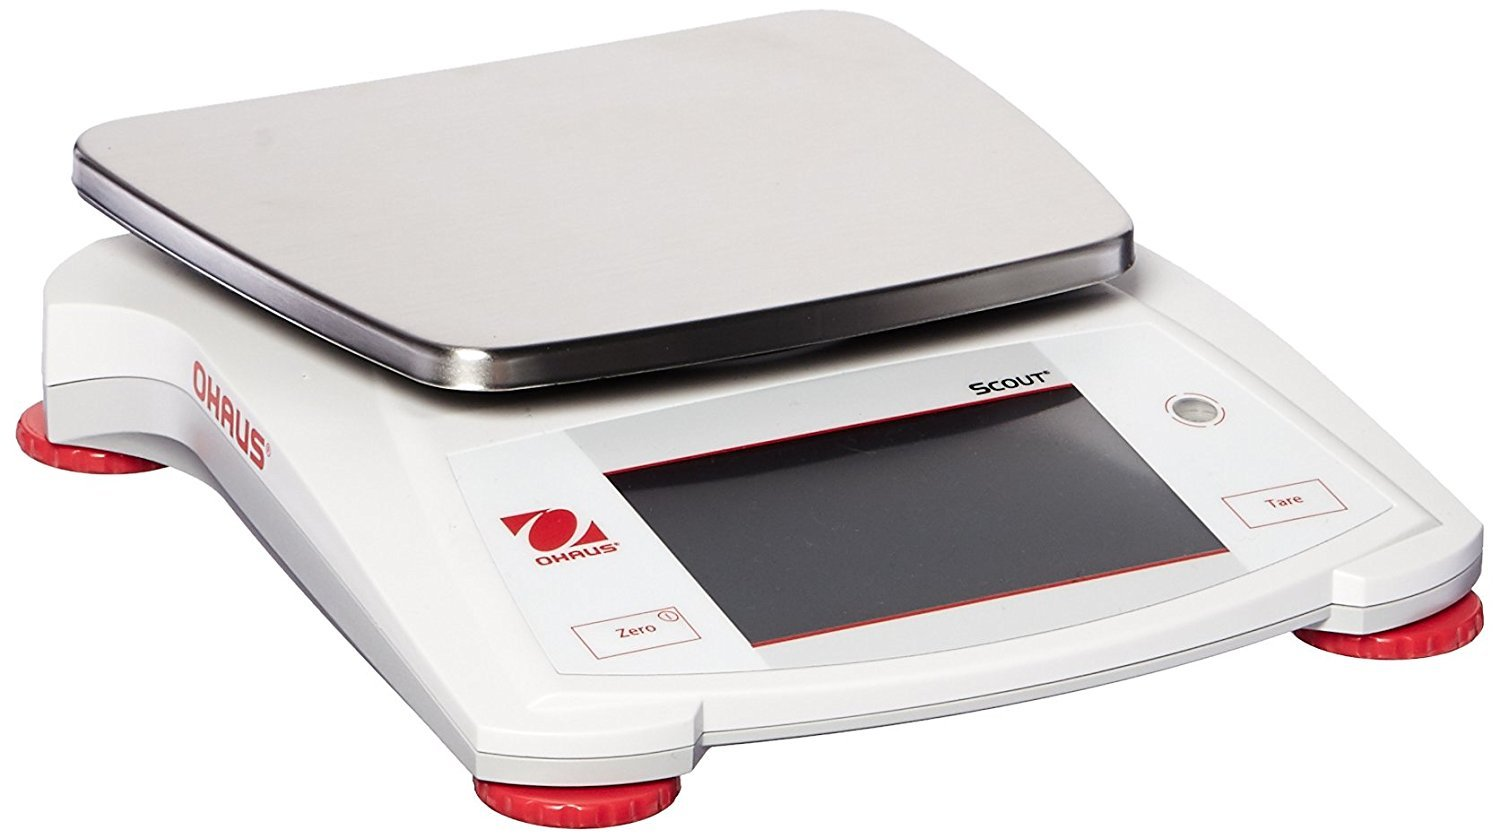 STX8200 Ohaus Scout Portable Balance x with 8200g Opening large release sale 1g Touchscreen online shop